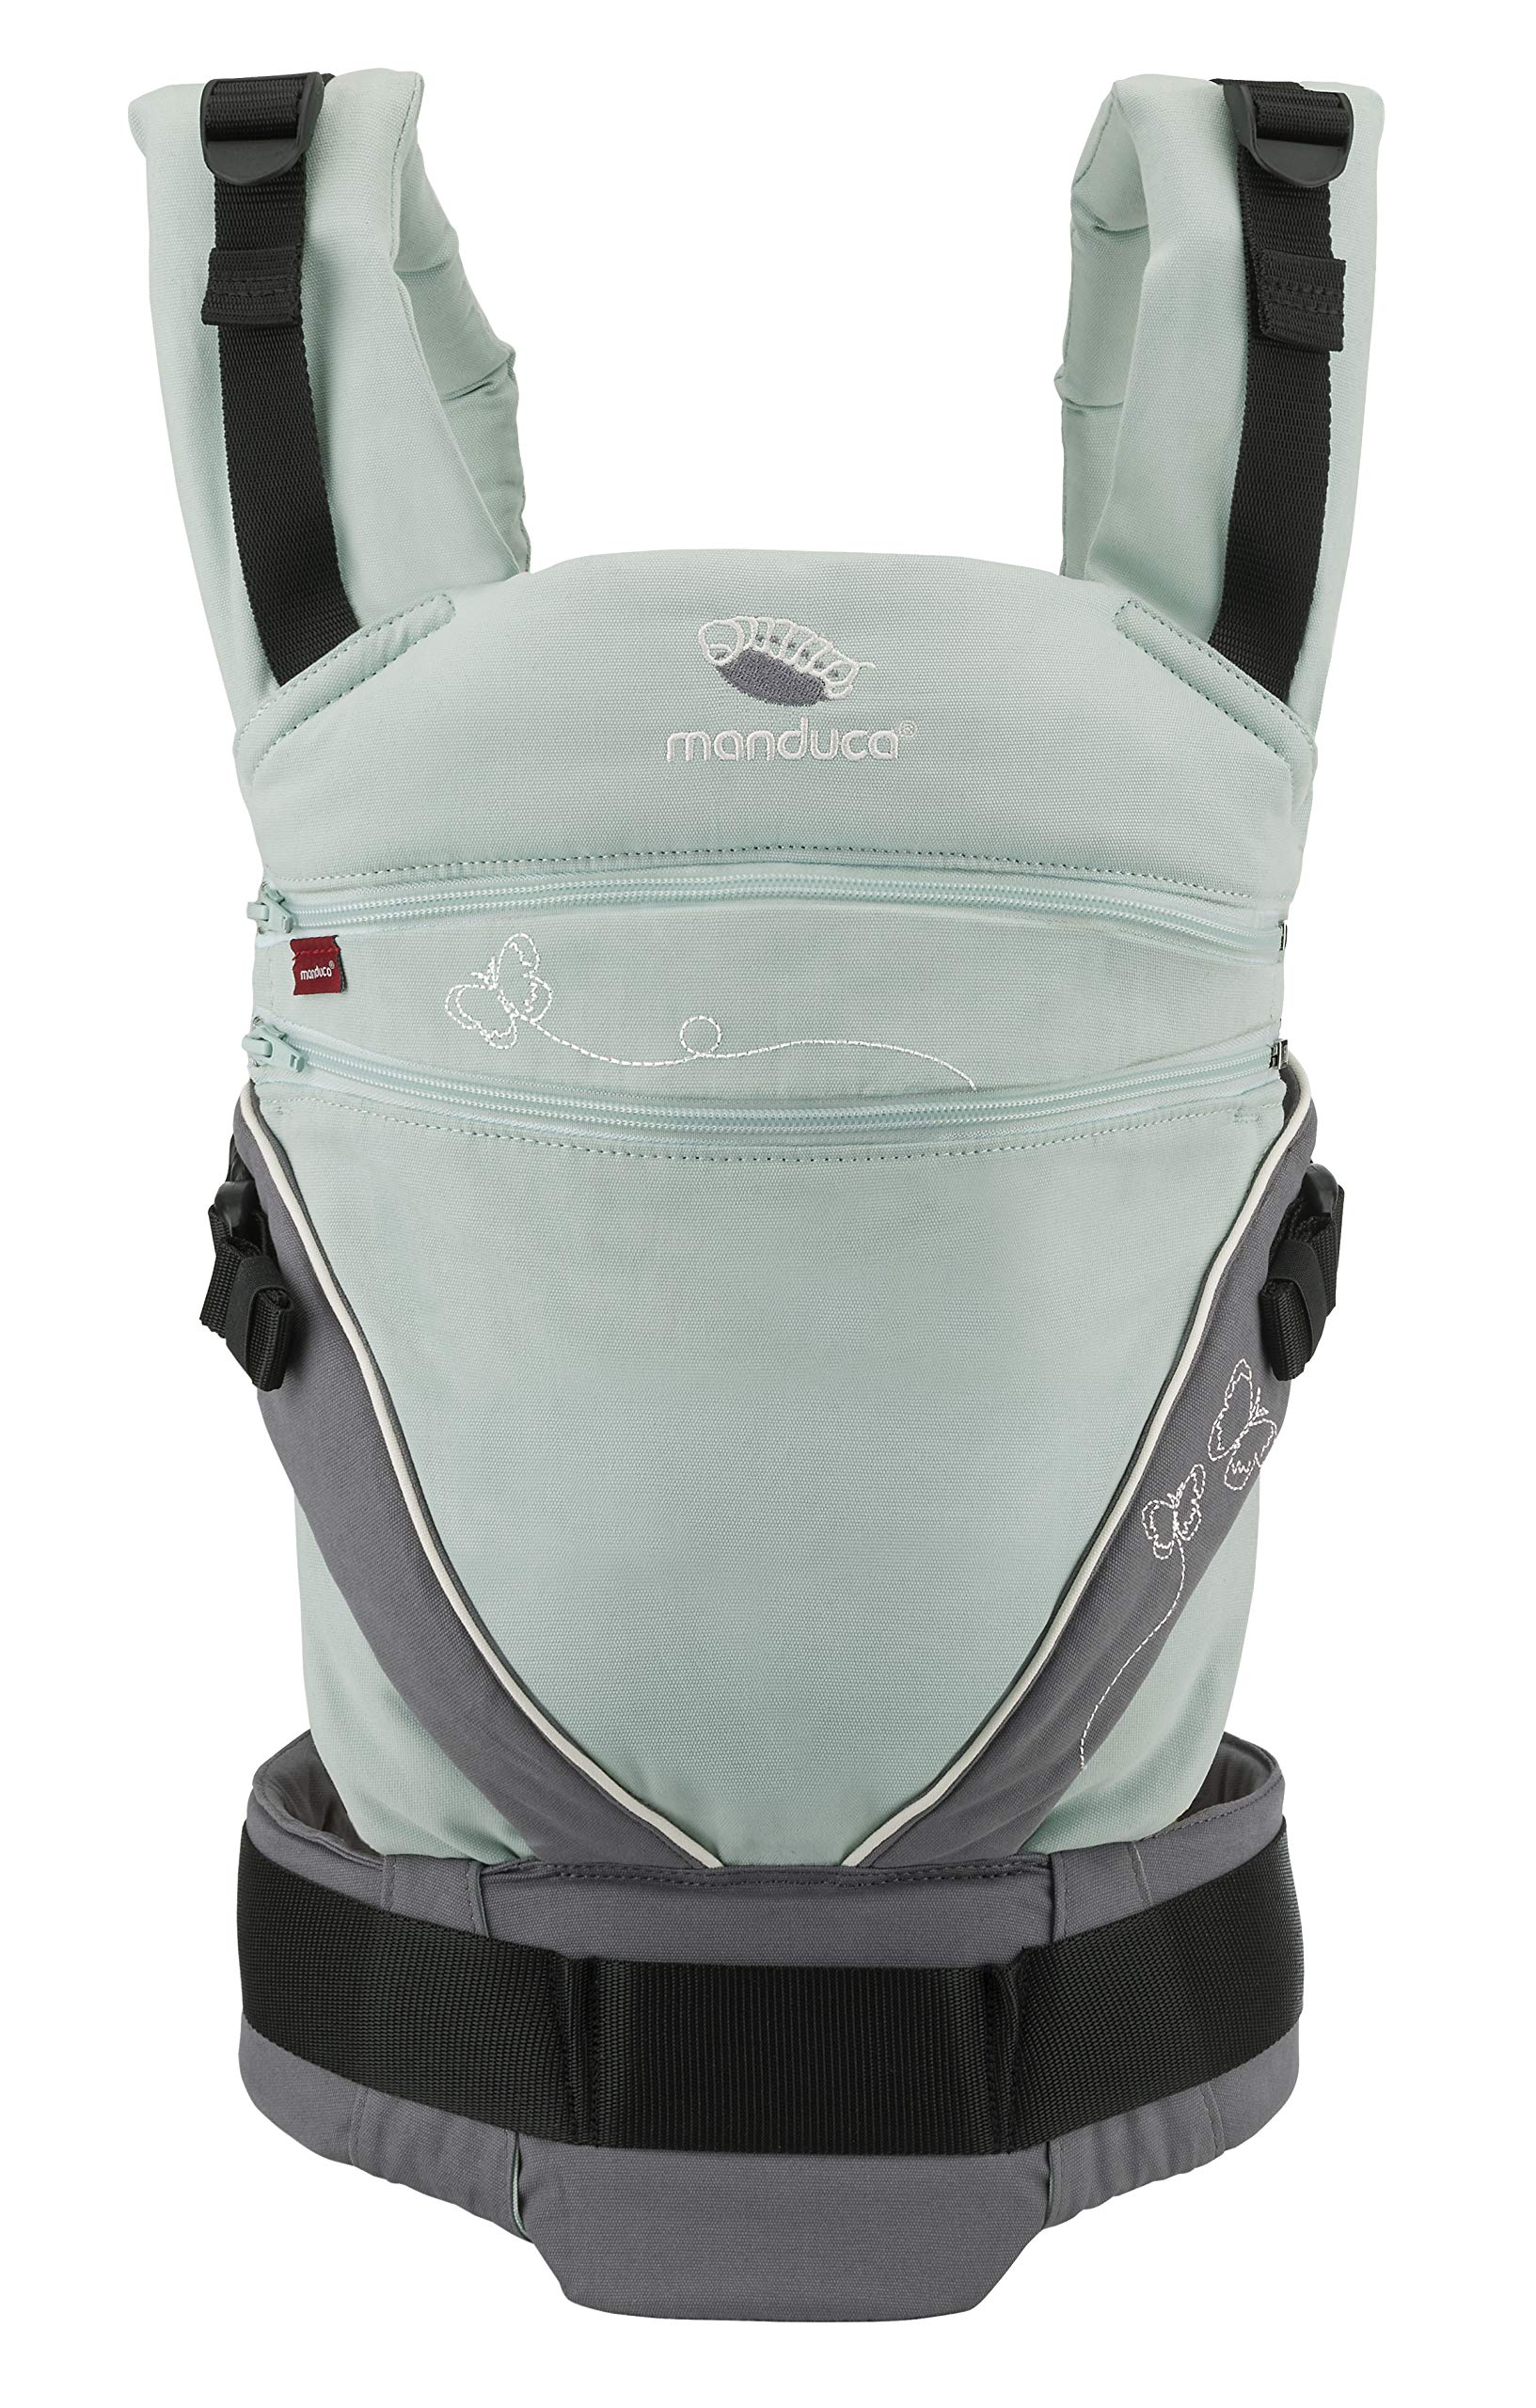 manduca XT Limited Edition > Butterfly Mint < Baby Carrier with Adjustable Seat, Front, Hip & Back Carry, Organic Cotton, No Accesories Needed, Designed for Babies from Newborn to Toddler (3.5-20kg) Manduca This baby carrier grows with your child from newborn to toddler: Infinitely adjustable seat (16 -50cm width) without buttons, knots, velcro or cord system. Innovative tension arches support baby's spine & hip Three height options thanks to the patented back extension & integrated Zip-in. Multifunctional headrest (classic hood or rolled up as neck support). No infant insert / accessories needed. One size Three carry positions (belly-to-belly, backpack and hip-seat). Not intended for forward facing. Supports the M-position 1